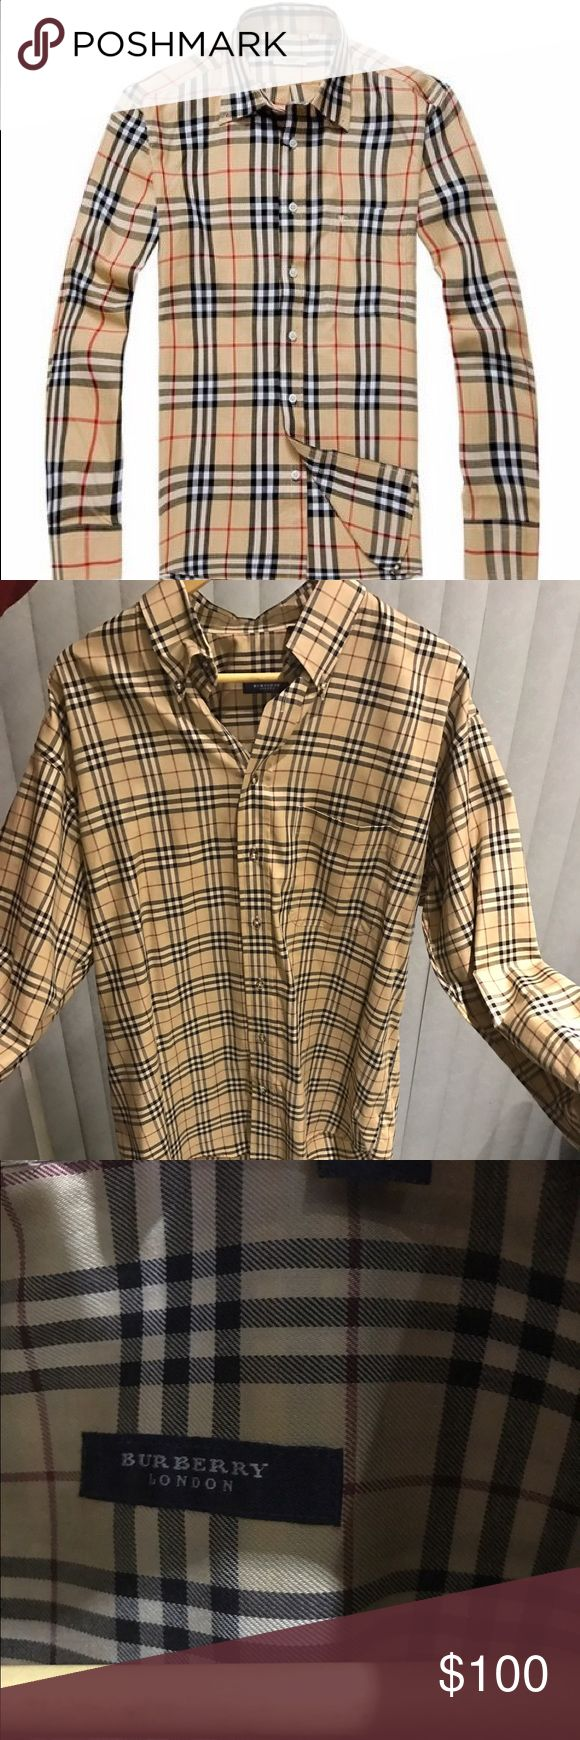 Authentic Burberry Men's dress shirt Worn only once. Size Large . Perfect condition . Authentic Burberry London for Men. Signature Burberry plaid Burberry Shirts Dress Shirts